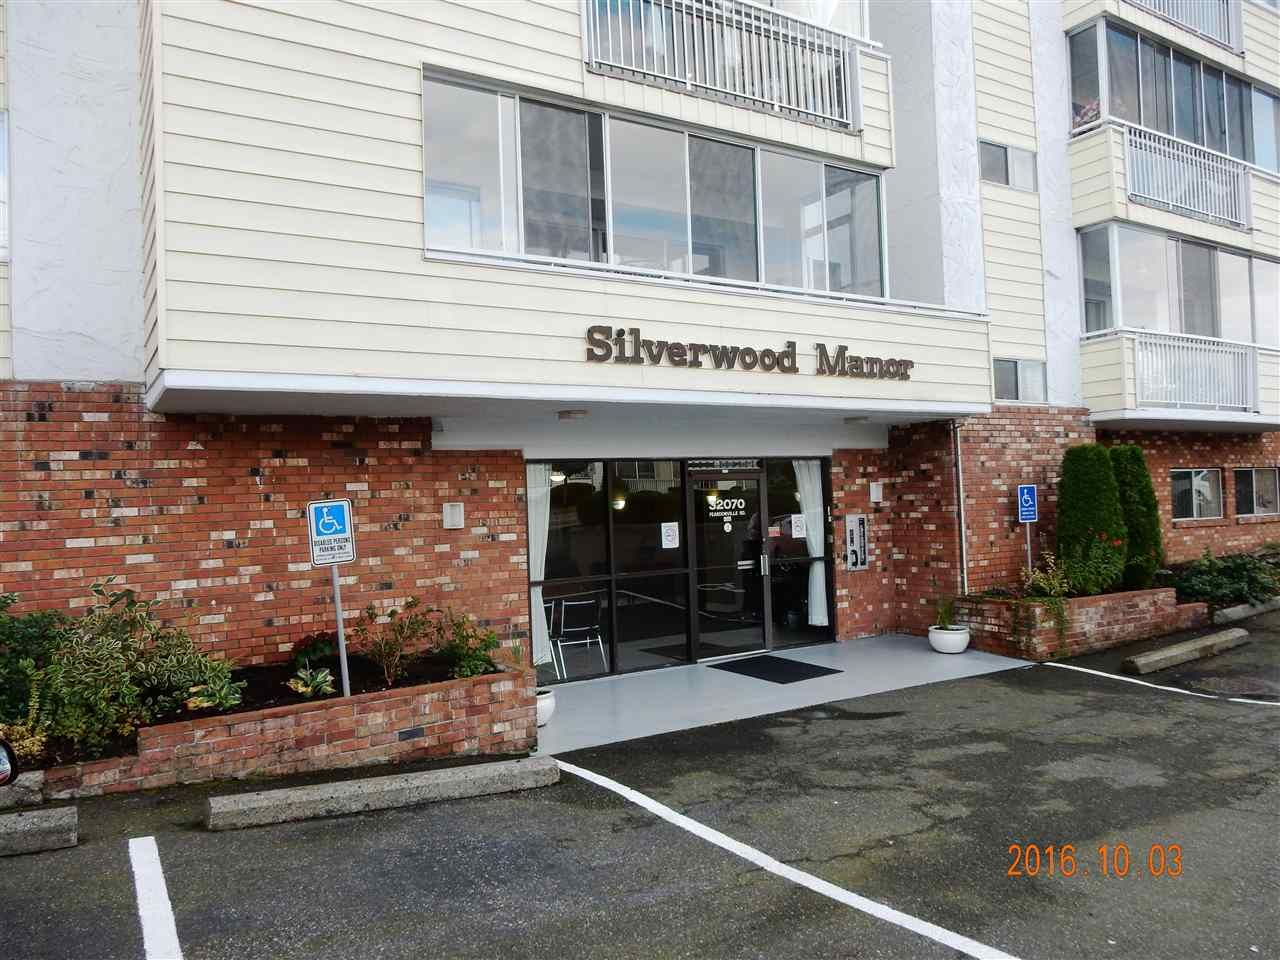 """Main Photo: 211 32070 PEARDONVILLE Road in Abbotsford: Abbotsford West Condo for sale in """"Silverwood Manor"""" : MLS®# R2113890"""